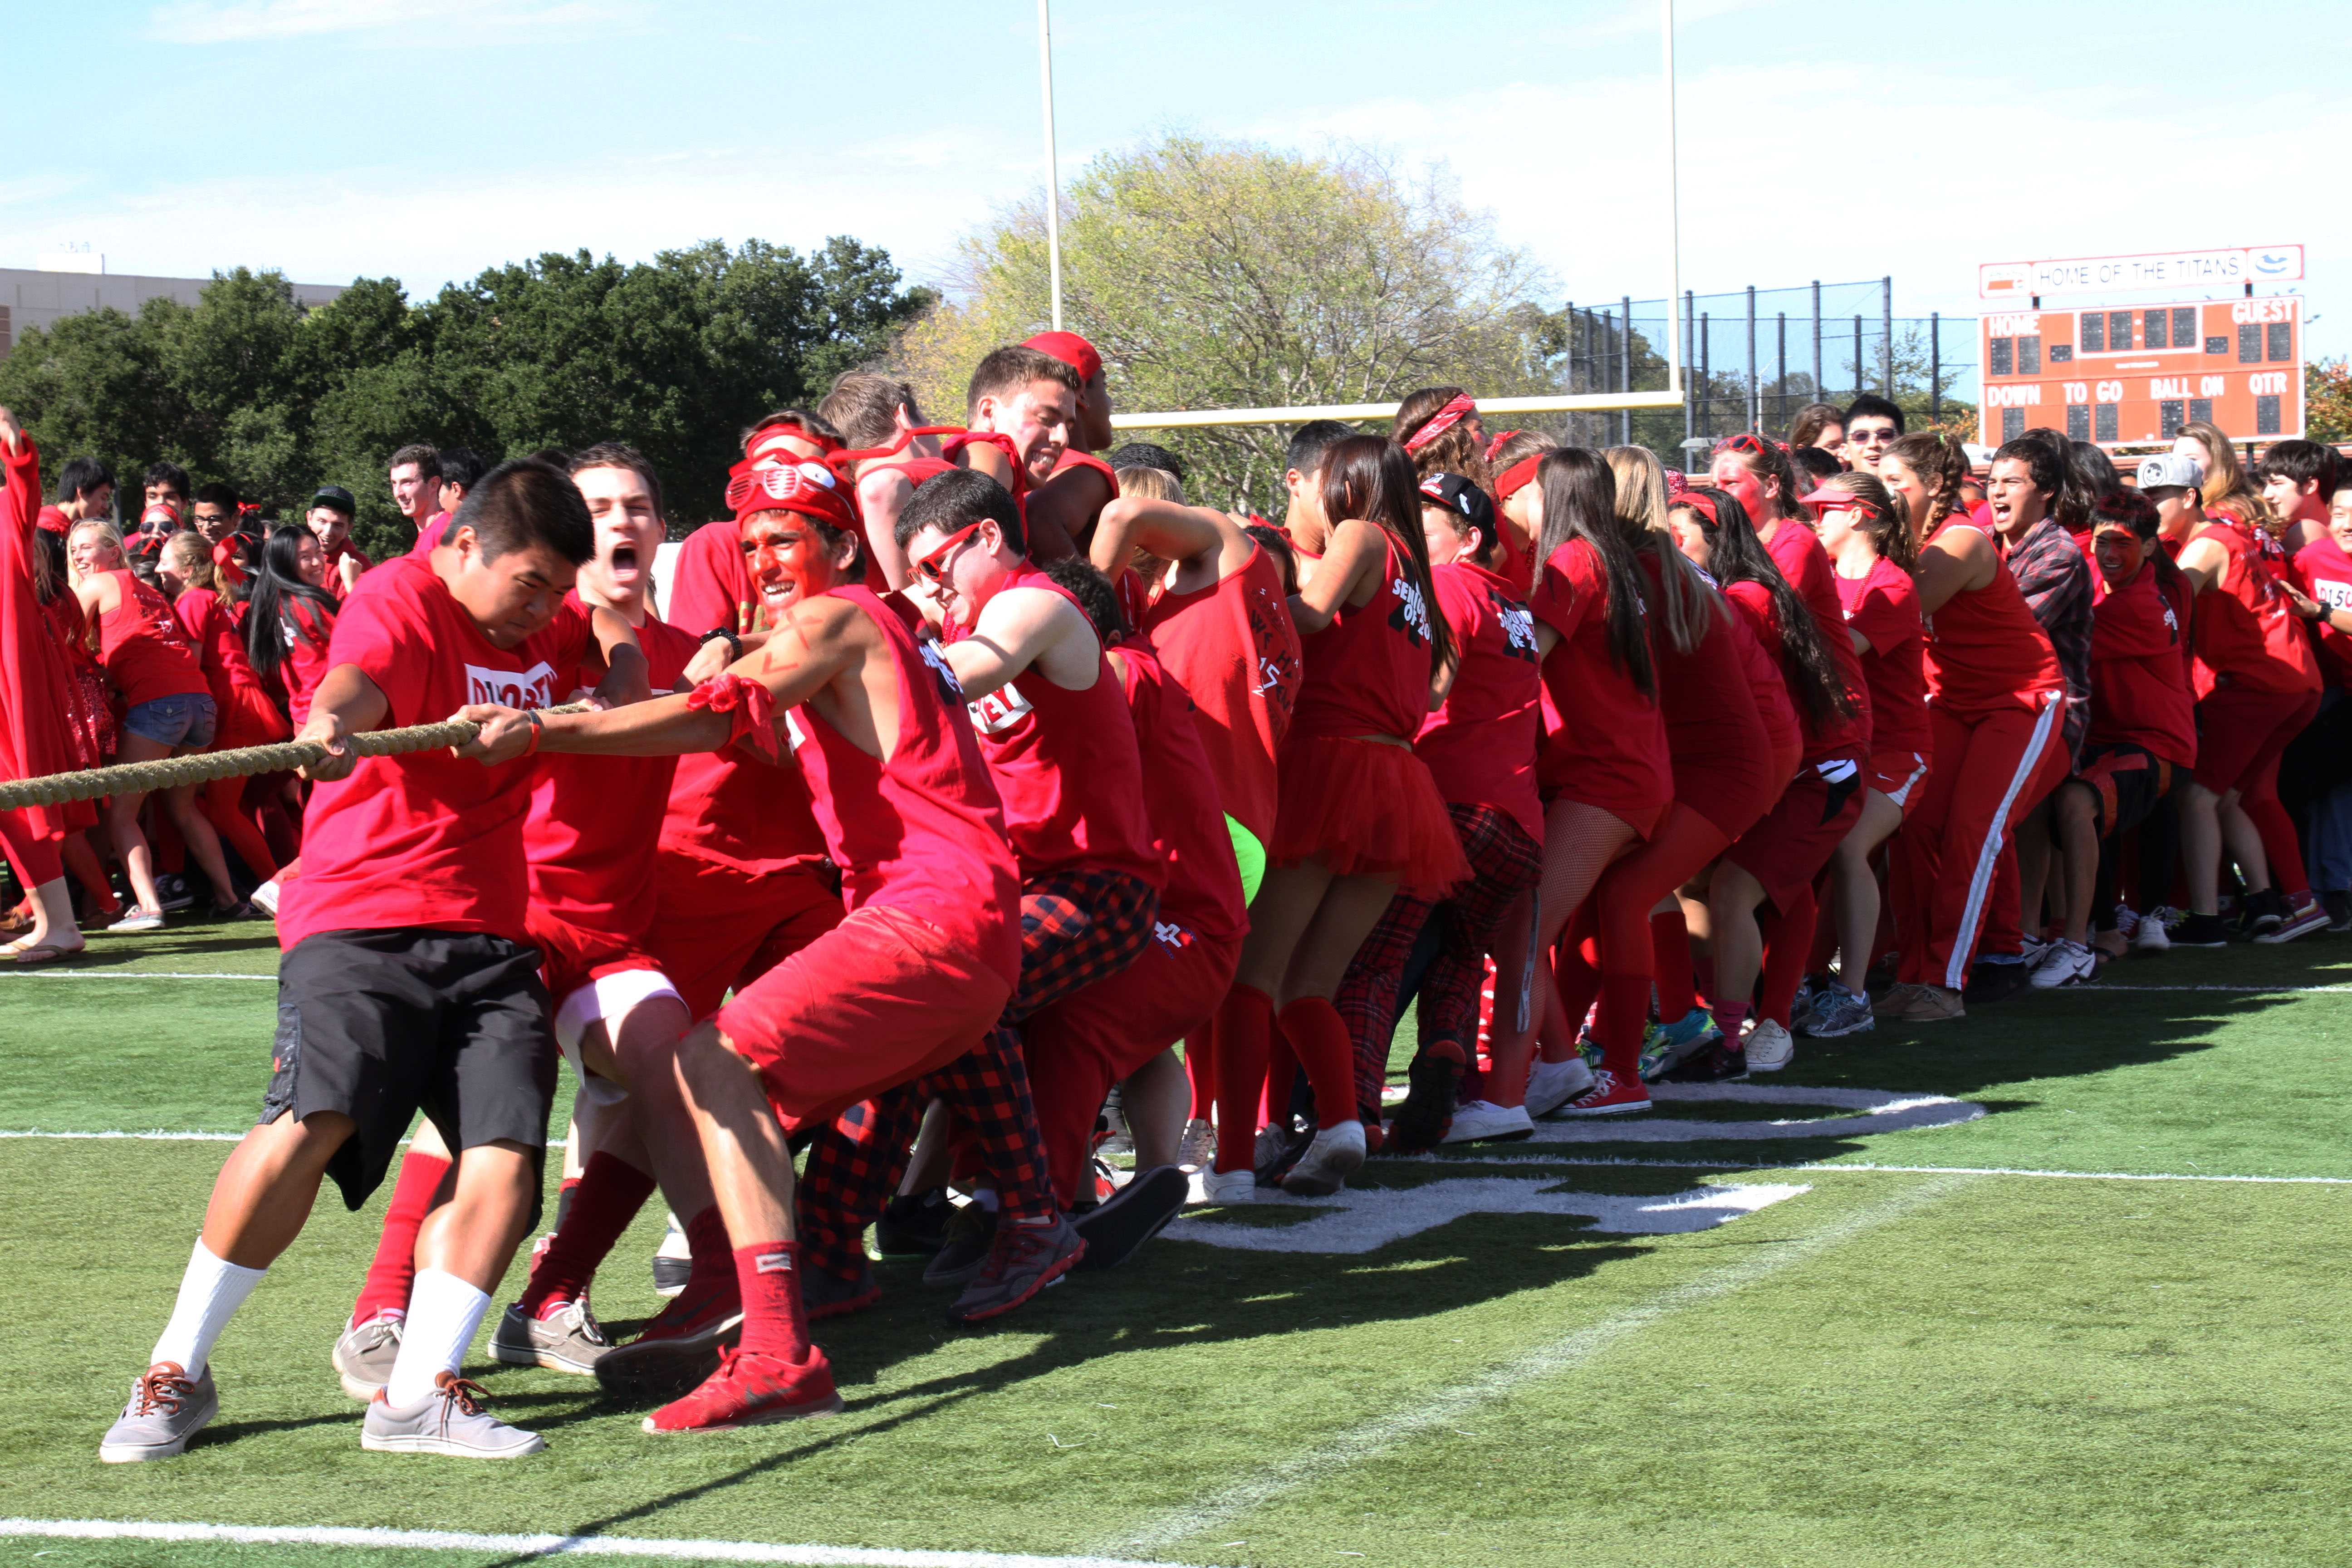 Senior+class+of+2015+pushes+through+the+end+of+a+Tug-of-War+match+during+Lunch.+Photo+by+Alexandra+Ting.